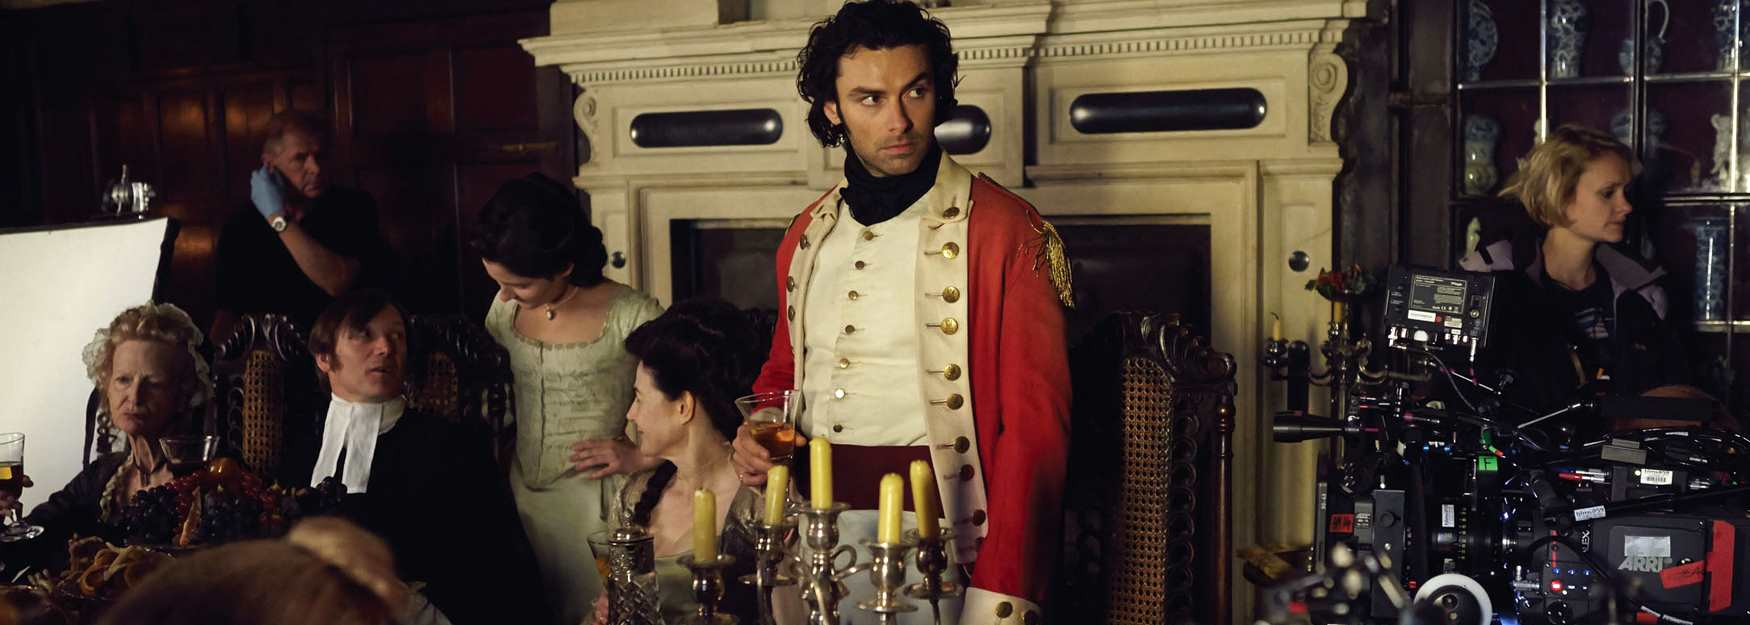 Filming Poldark at Chavenage House